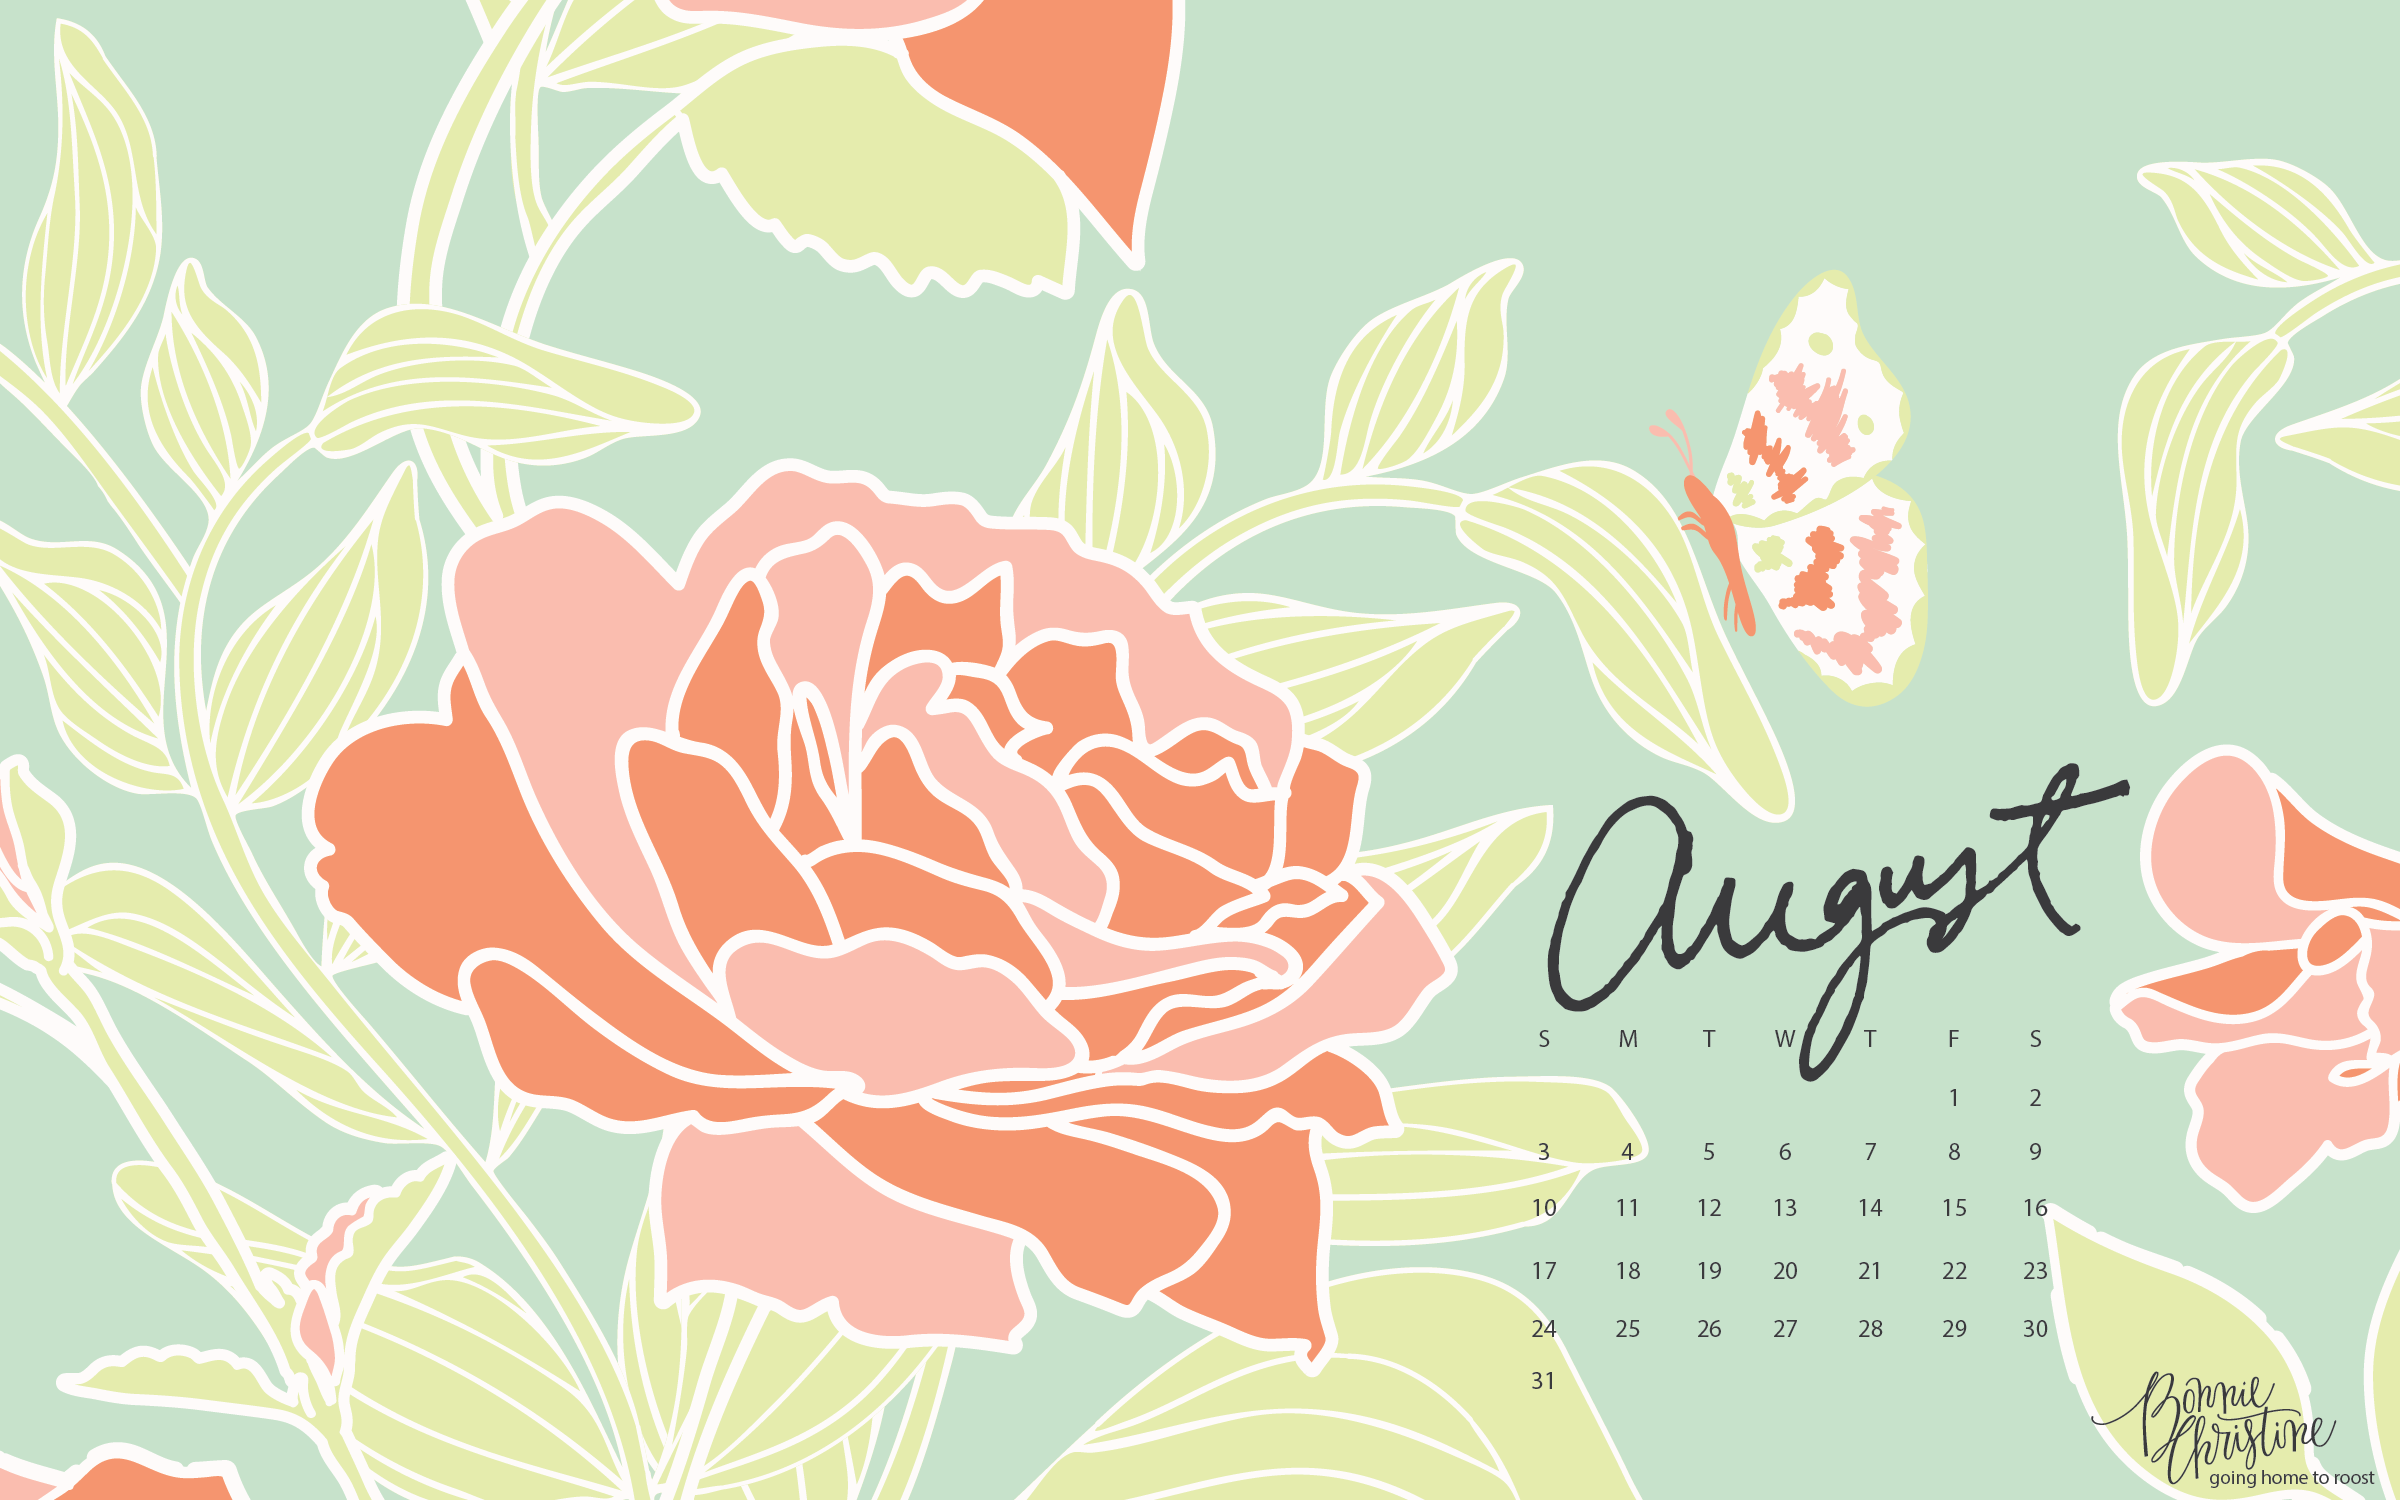 August 2014 Free Wallpapers! | Nicole's Classes